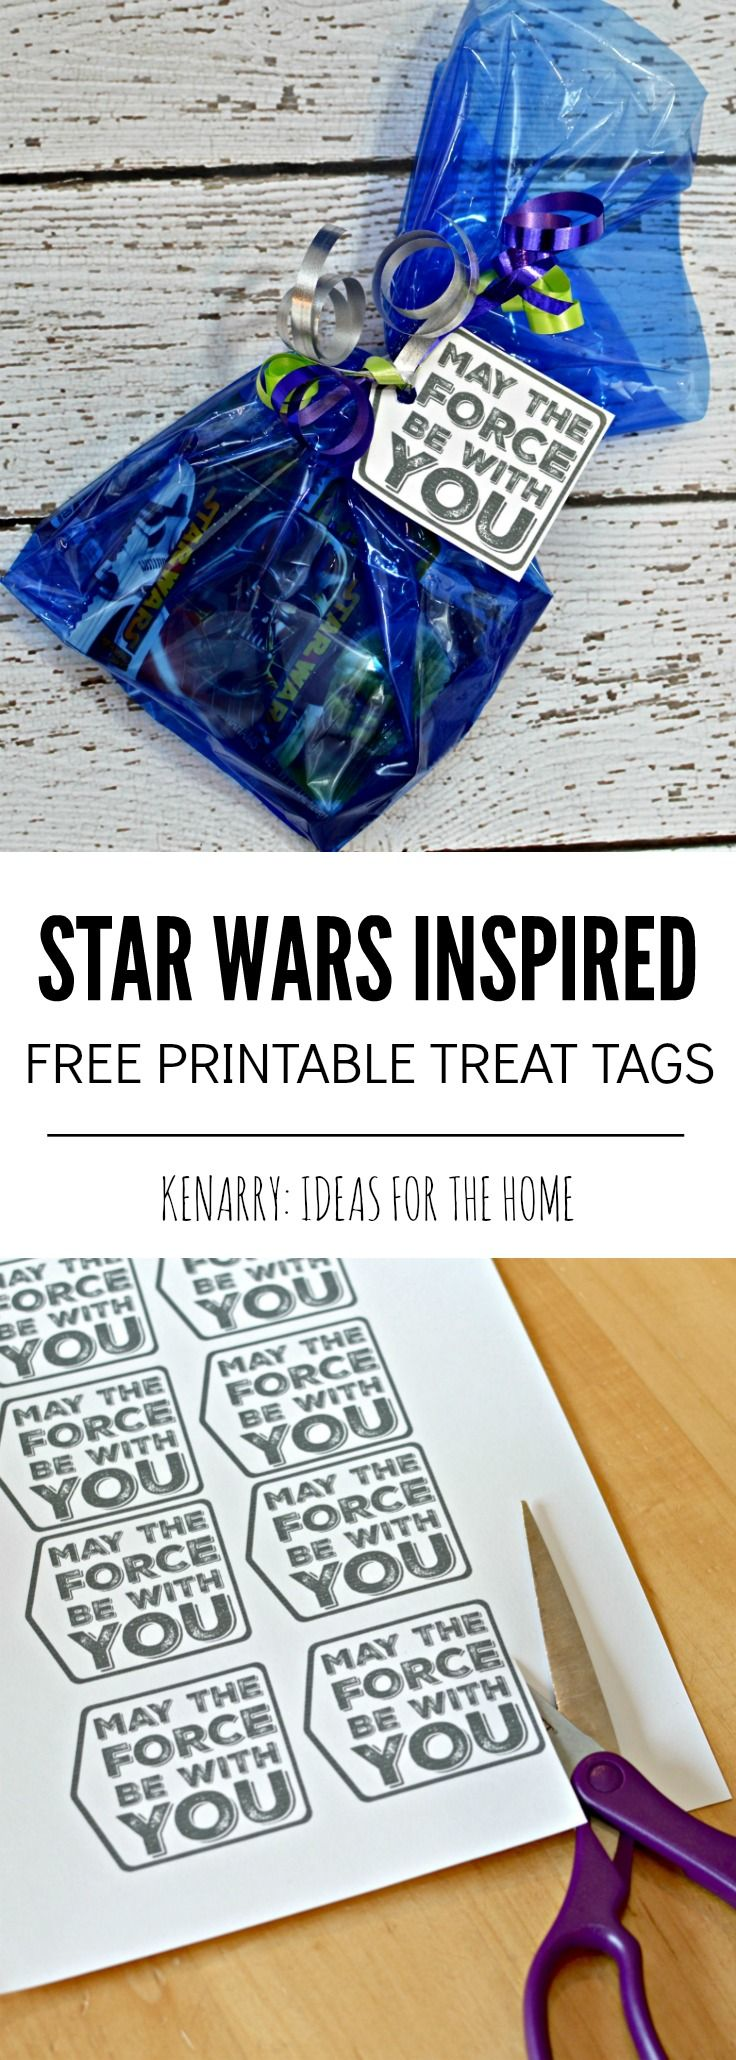 "What a cute and easy idea for Star Wars party favors! Just fill a treat bag with Star Wars crackers, stickers, fruit snacks or trinkets then attach the free printable ""May the Force Be With You"" tags. My son would love to give these as a birthday treat or valentines at school!"